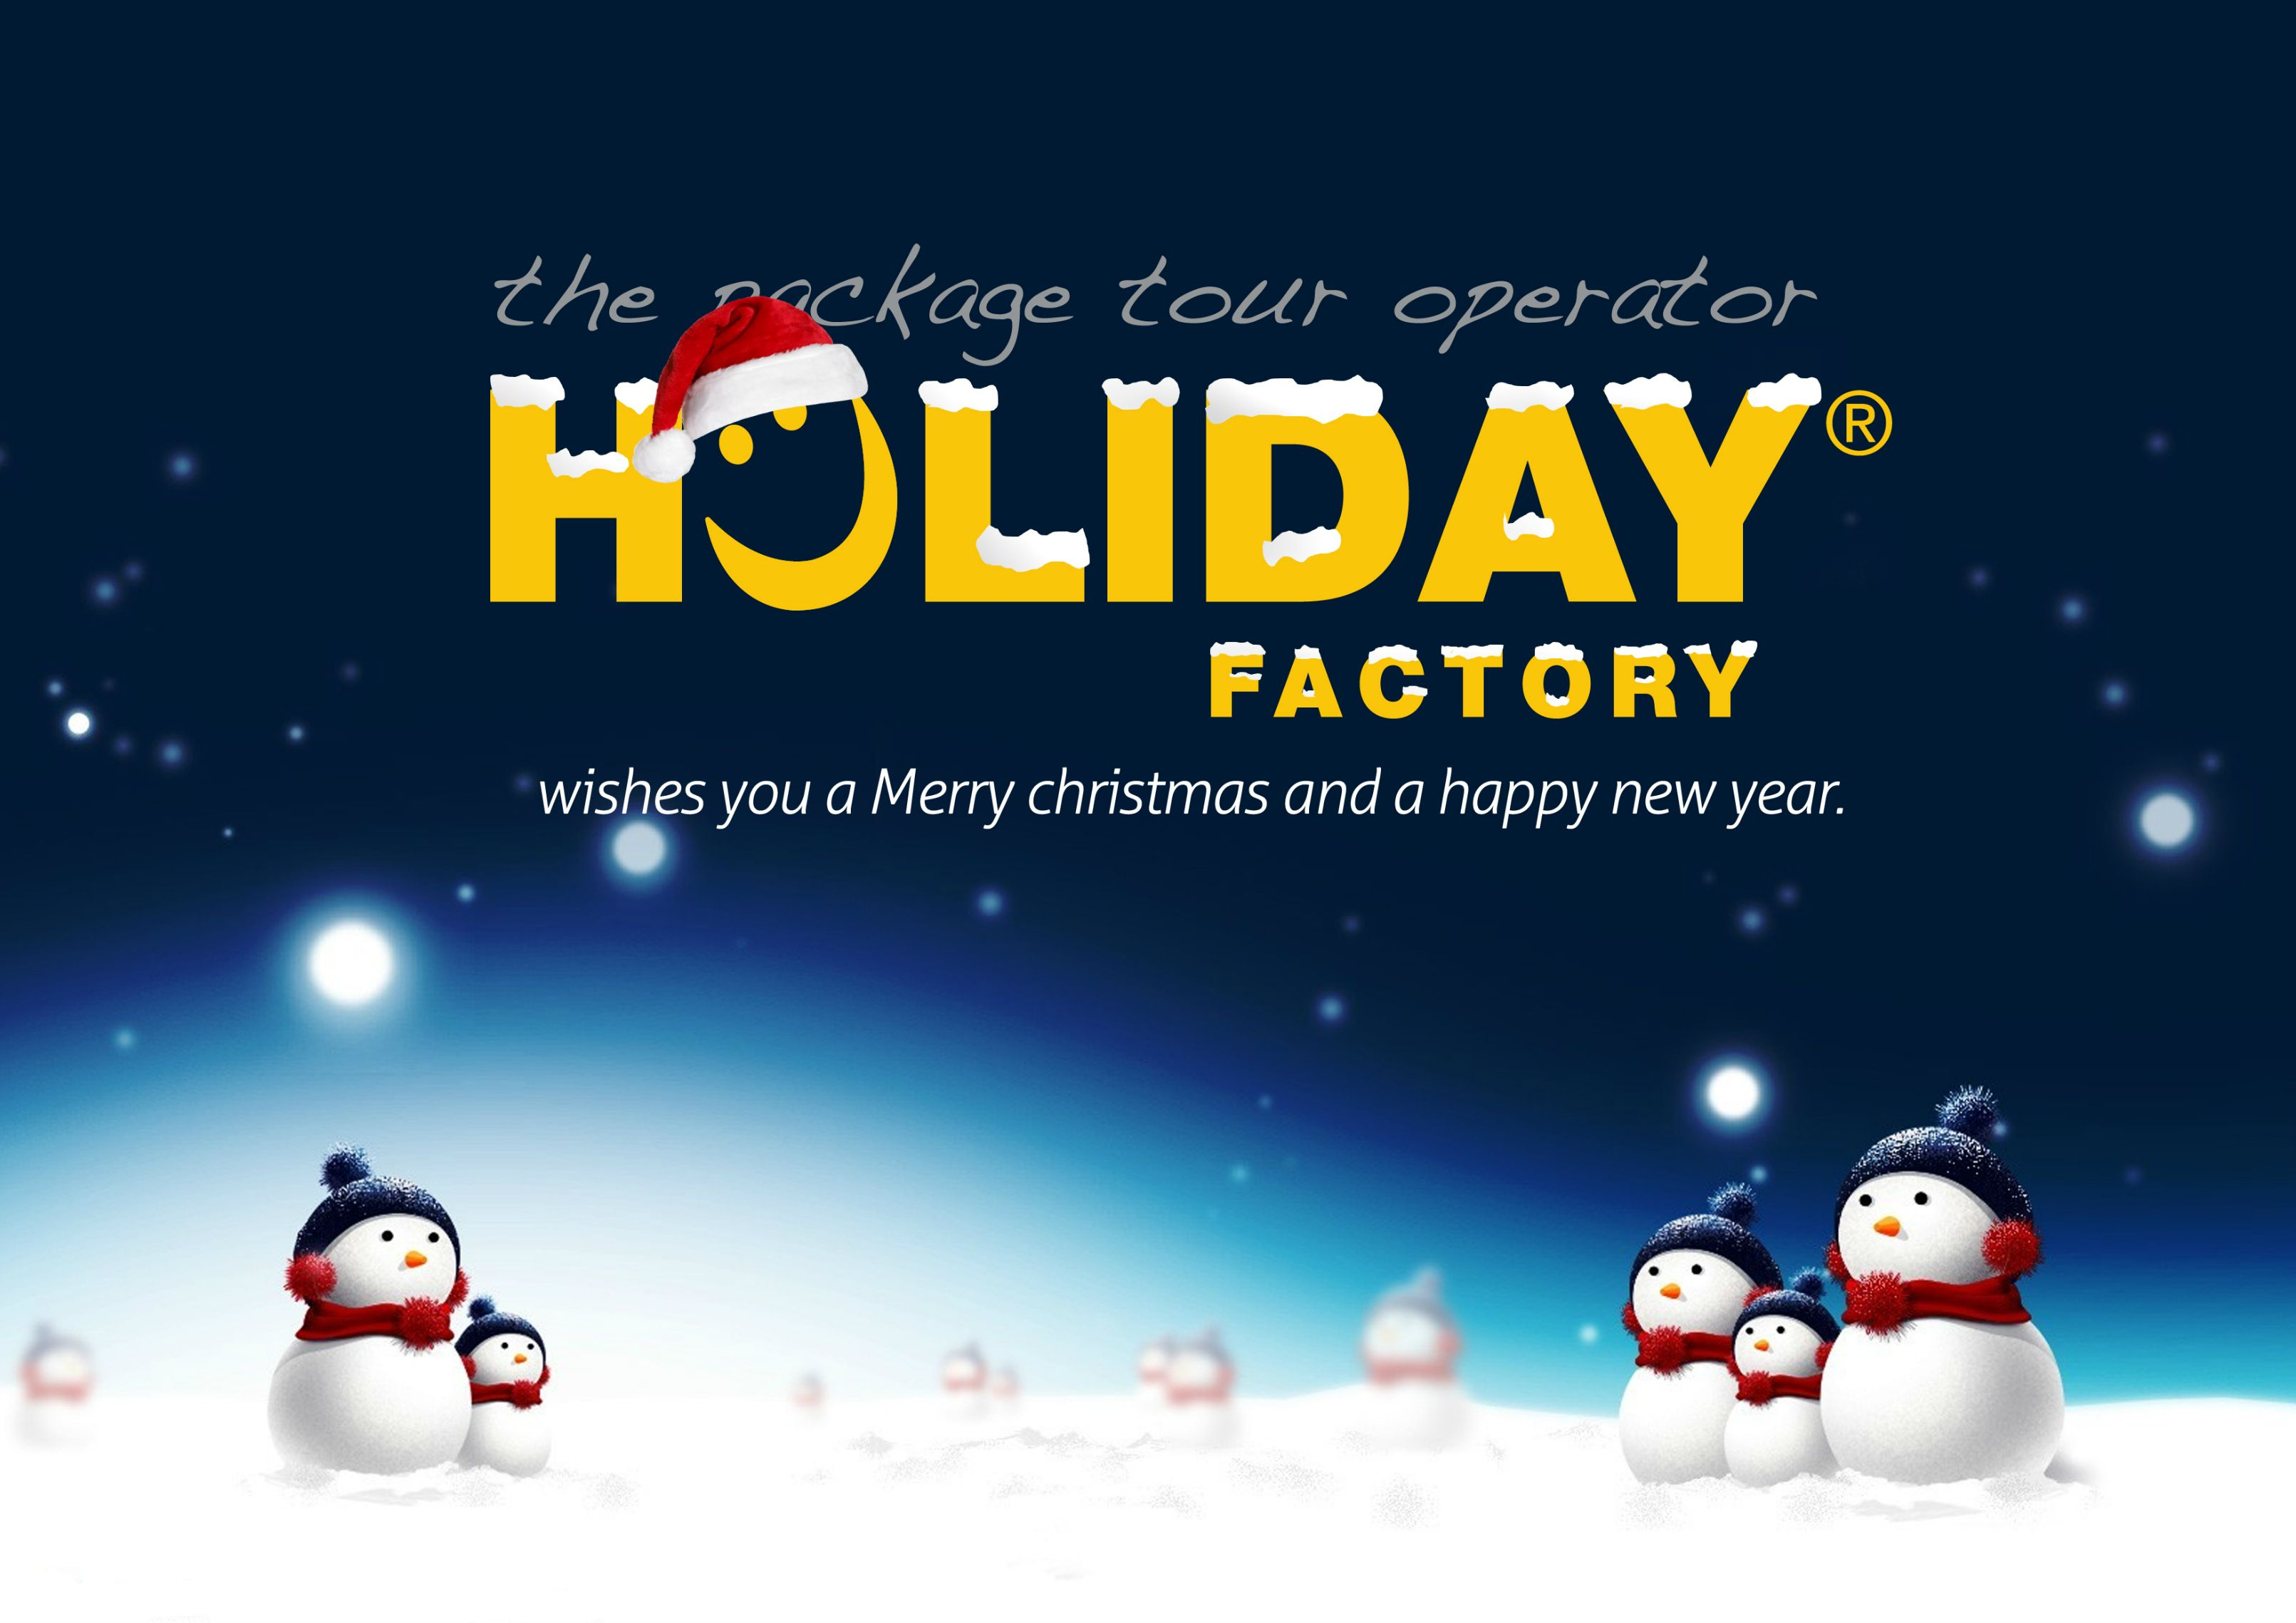 Holiday Factory wishes you a Merry Christmas and a Happy